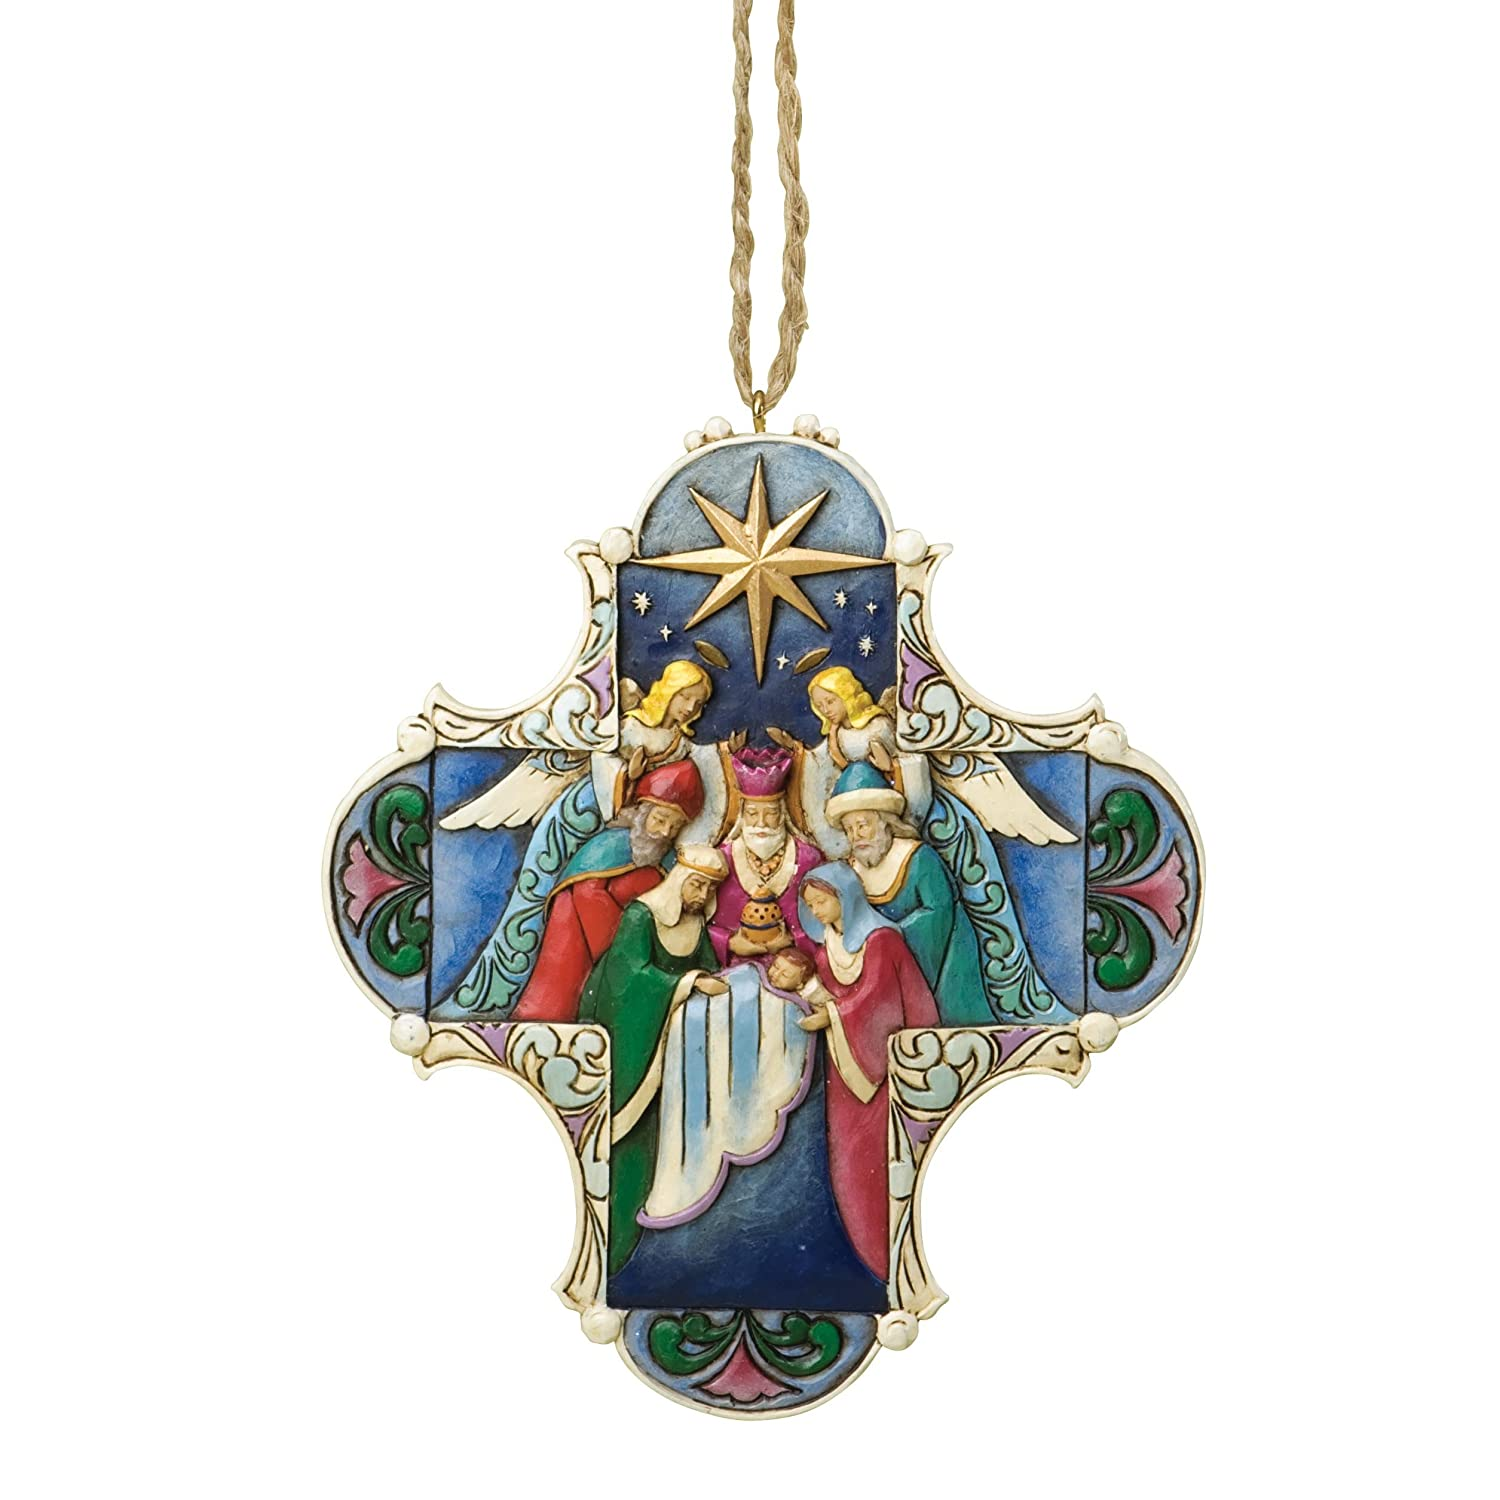 Jim Shore for Enesco Heartwood Creek Nativity Cross Ornament, 4.375-Inch